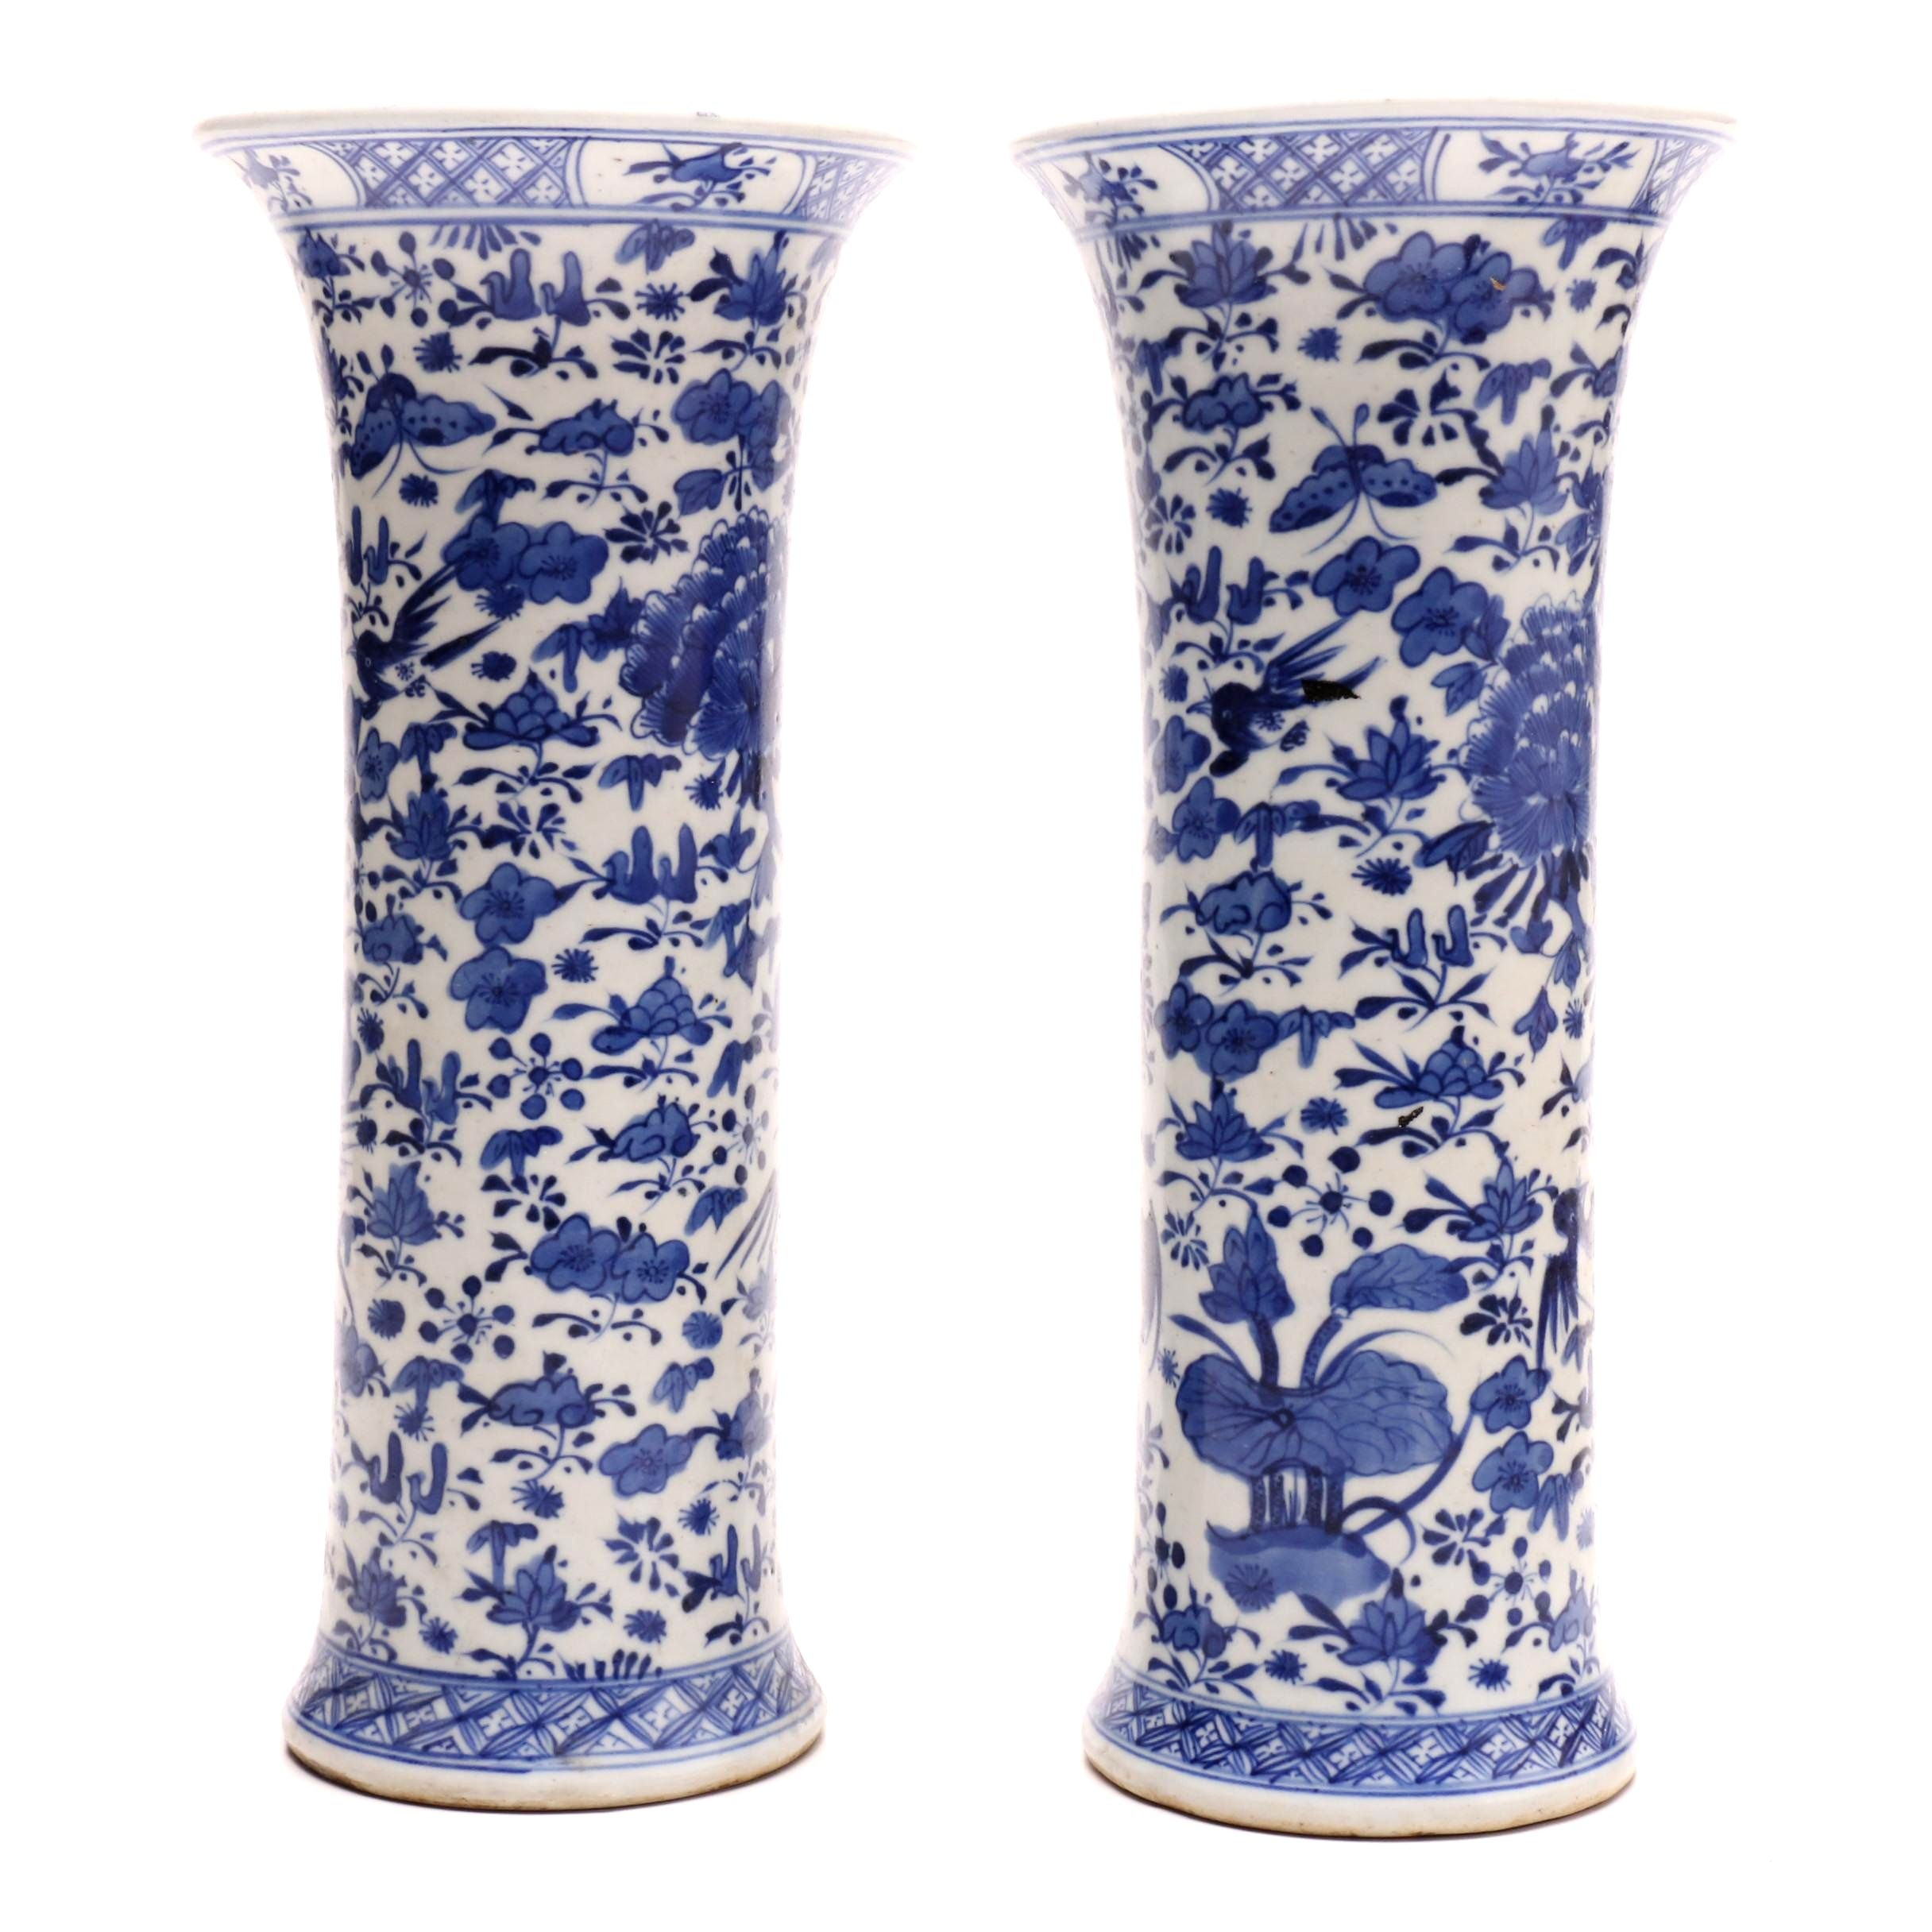 Early 20th-Century Chinese Blue and White Porcelain Vases